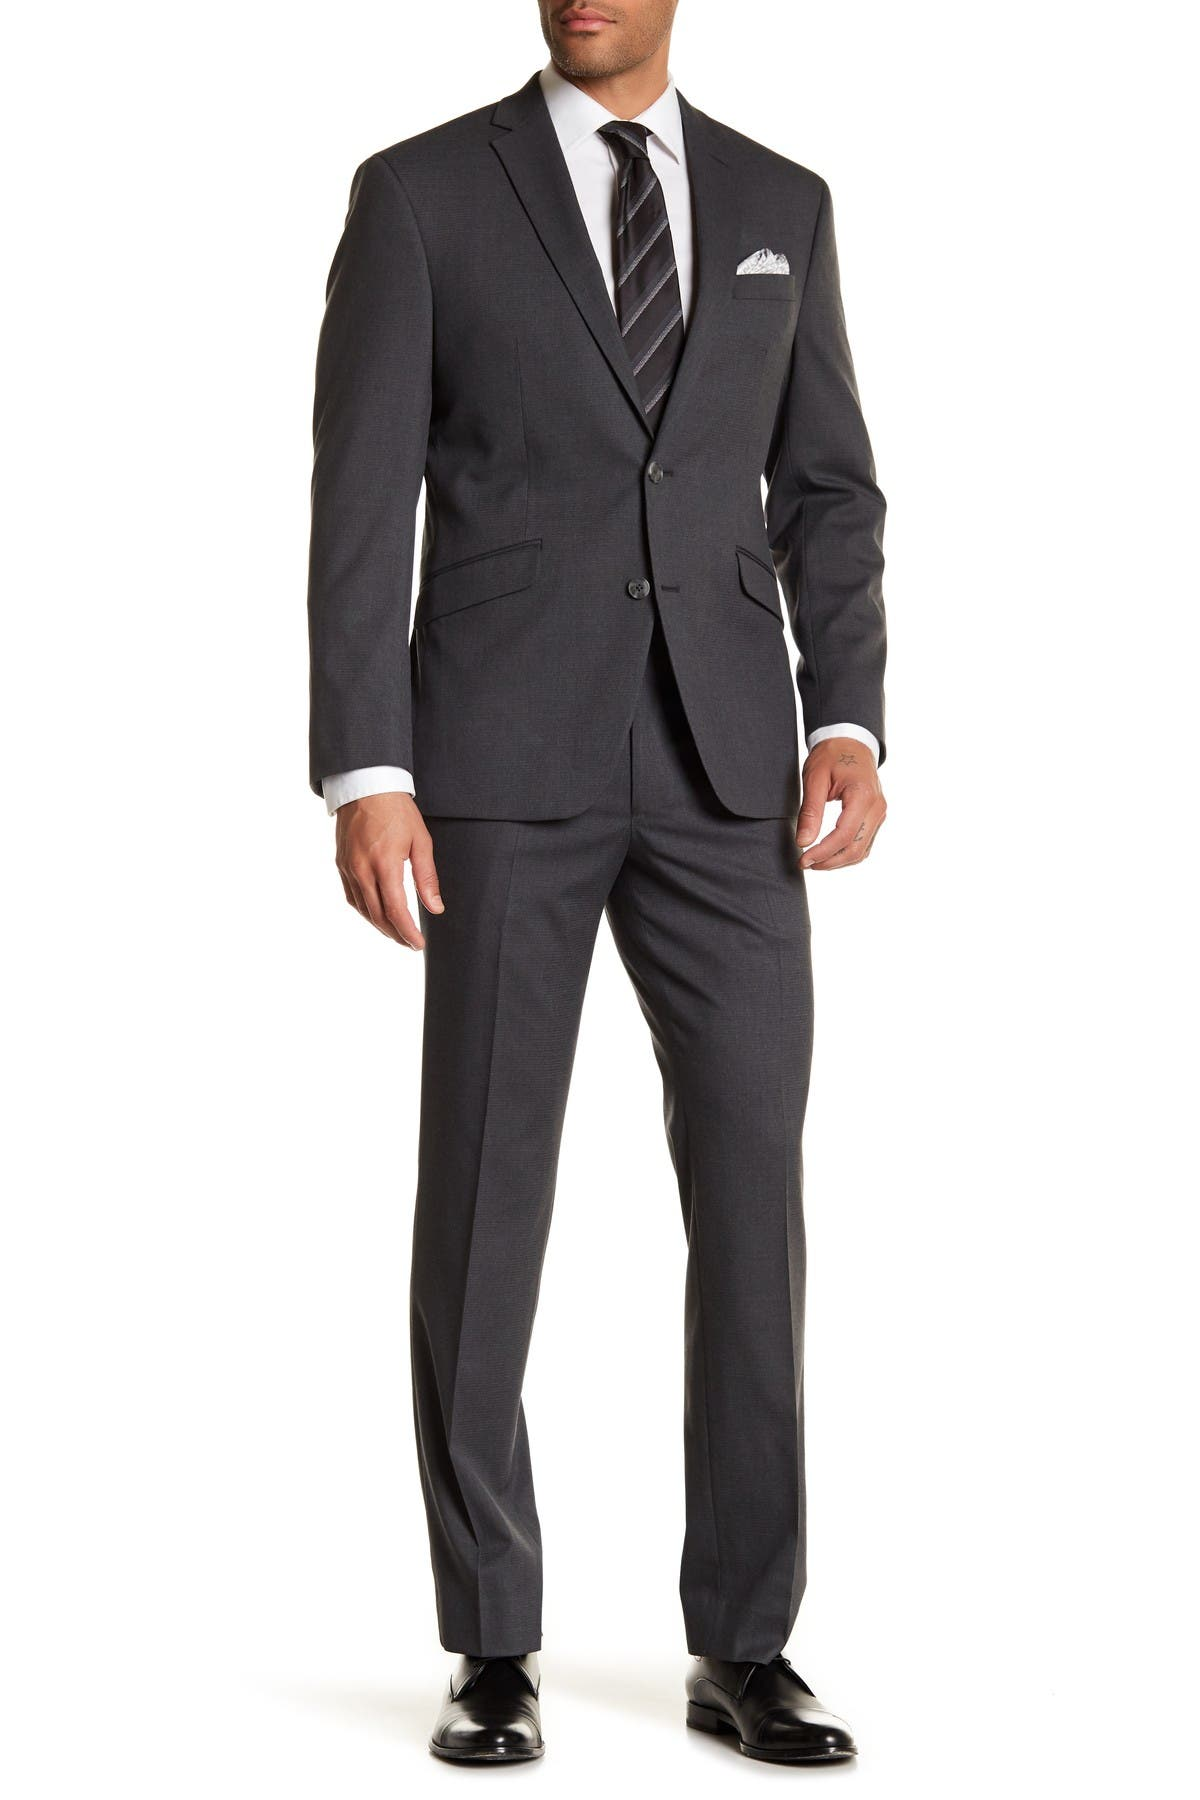 Image of Kenneth Cole Reaction Gray Check Two Button Notch Lapel Performance Stretch Slim Fit Suit